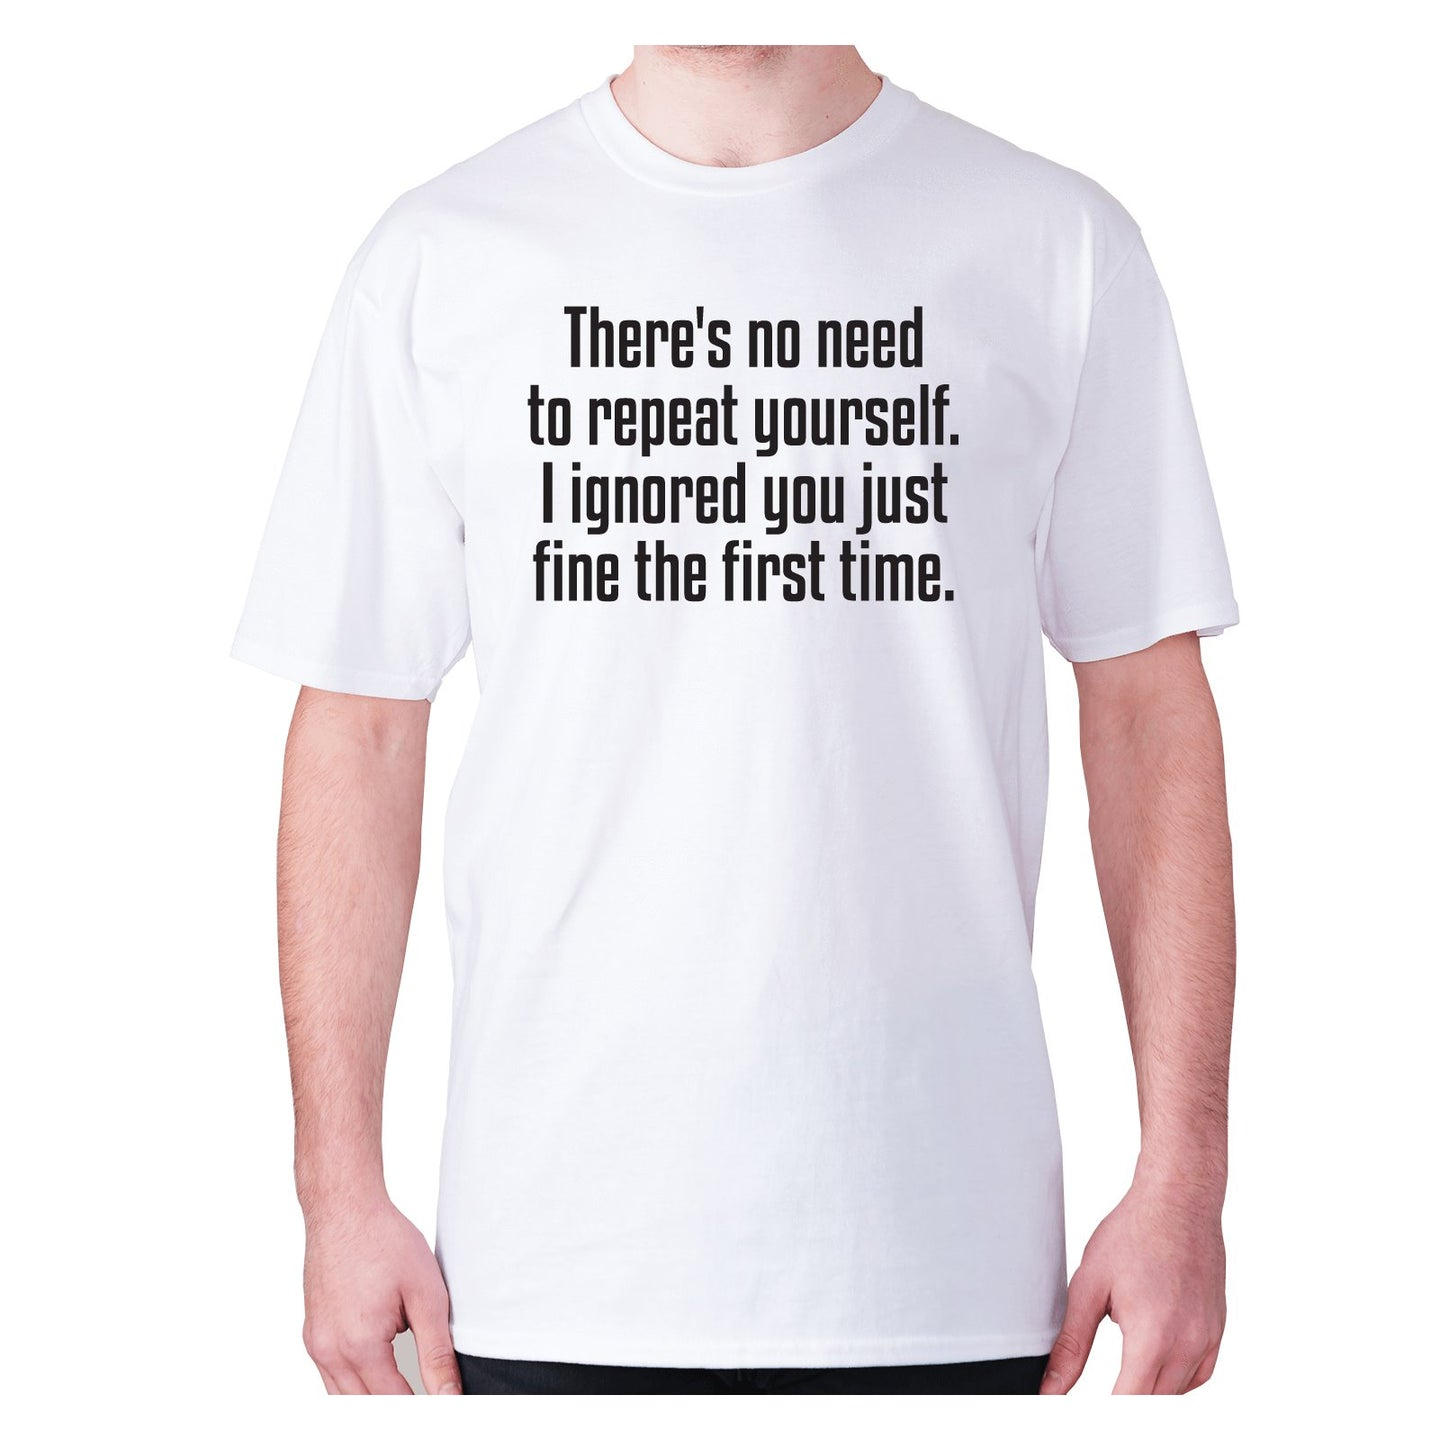 There's no need to repeat yourself. I ignored you just fine the first time - men's premium t-shirt - White / S - Graphic Gear